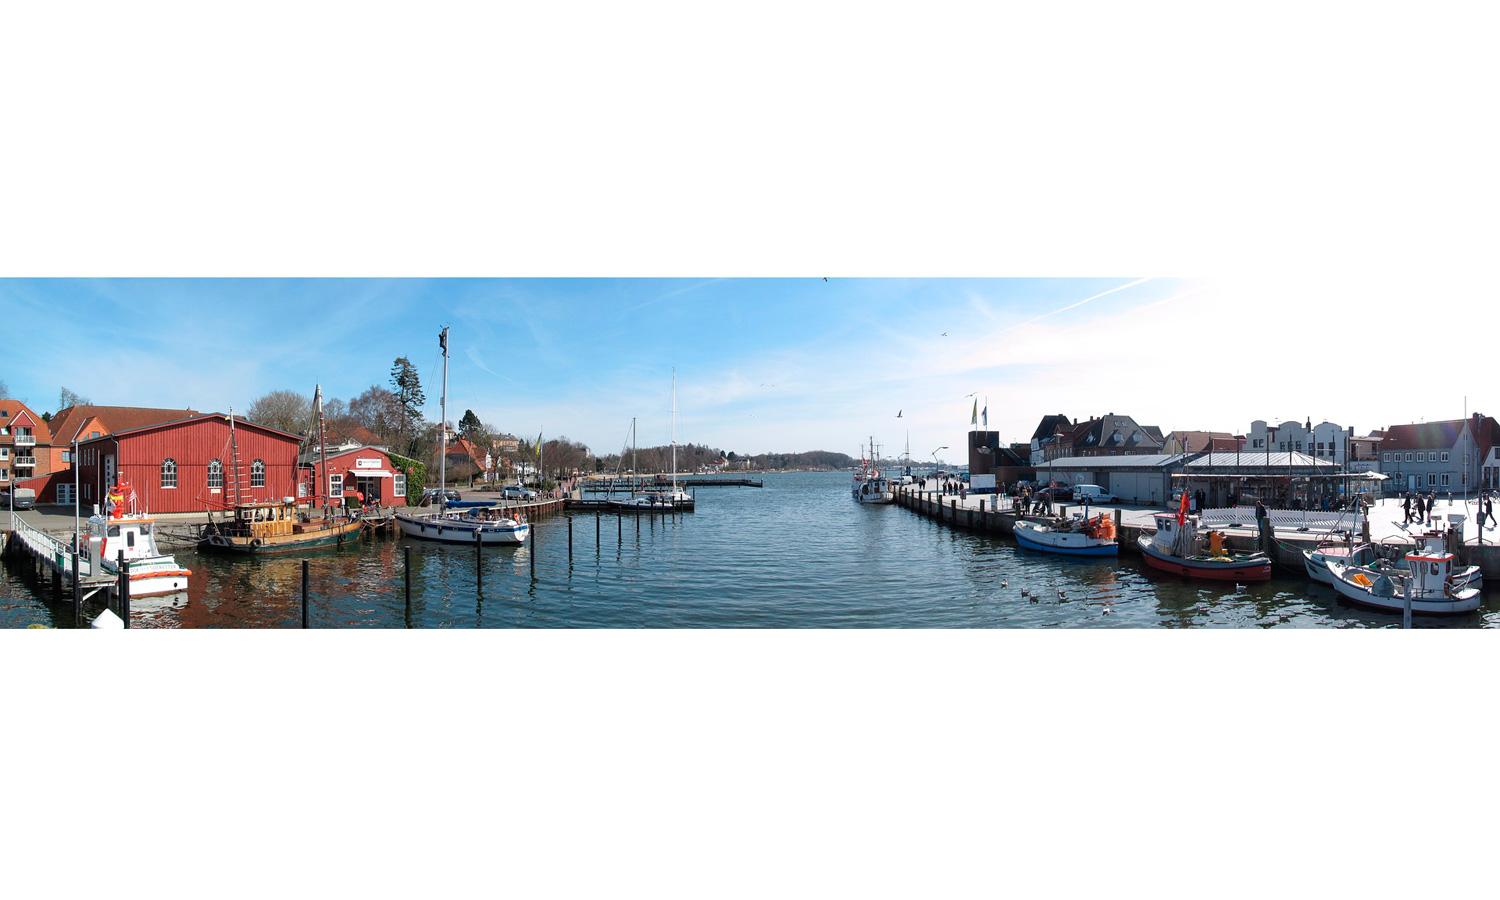 The harbor of Eckernförde (© Pixabay / 3298769)